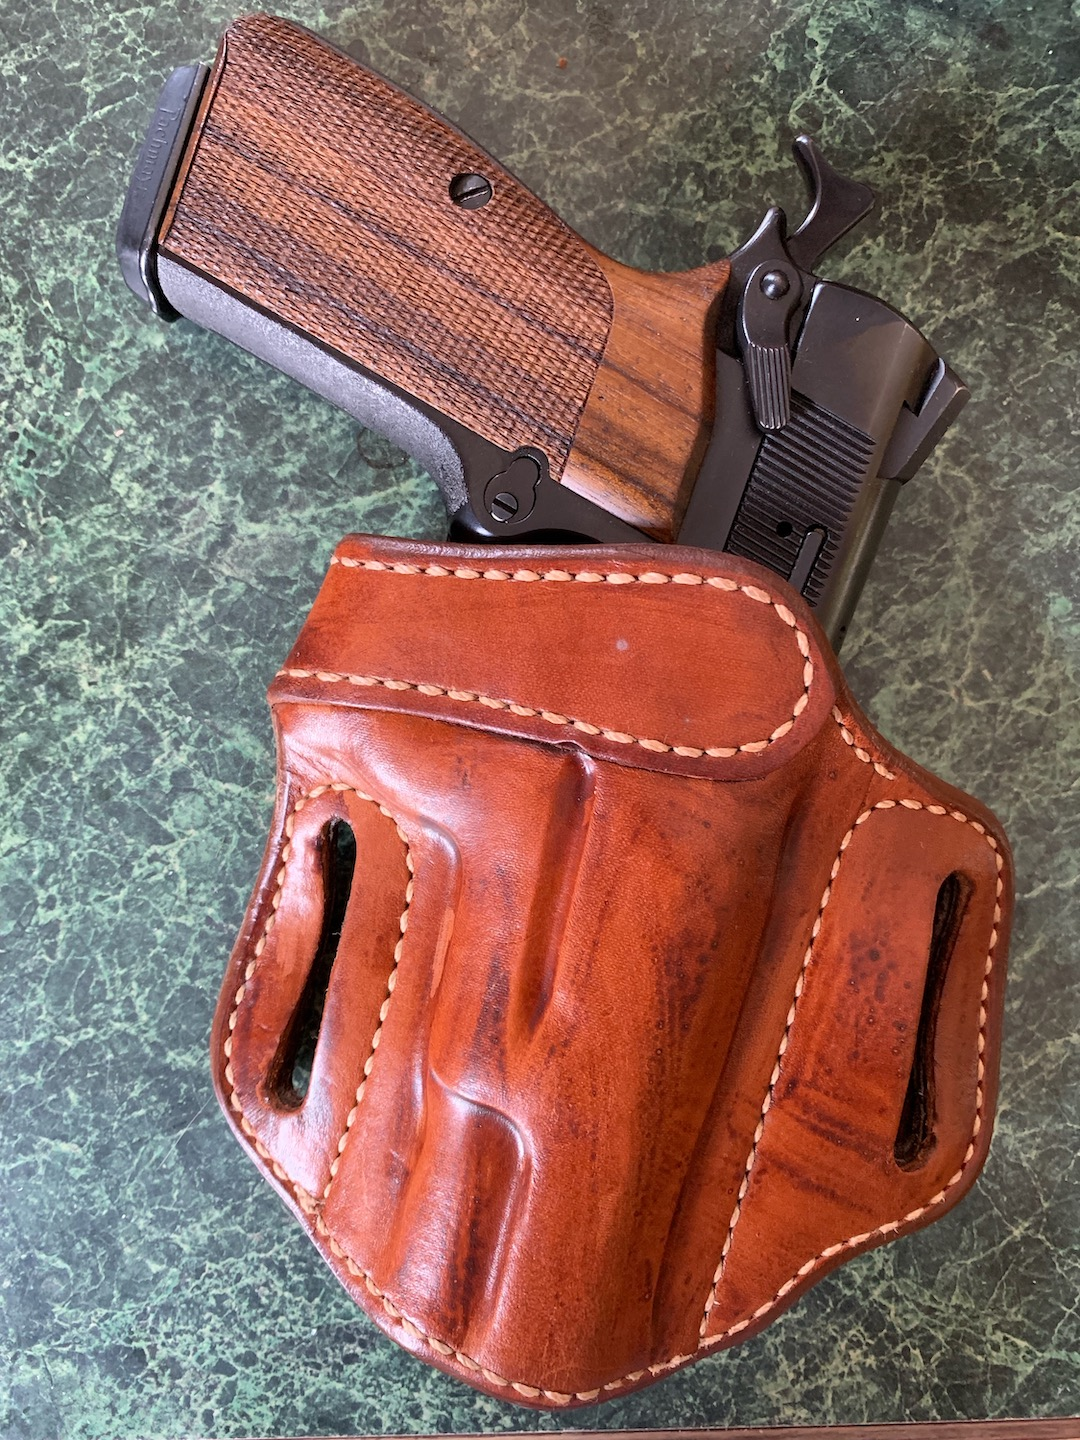 Let's See Your Pic's - How You Carry Concealed.-bhprossleather-copy.jpeg